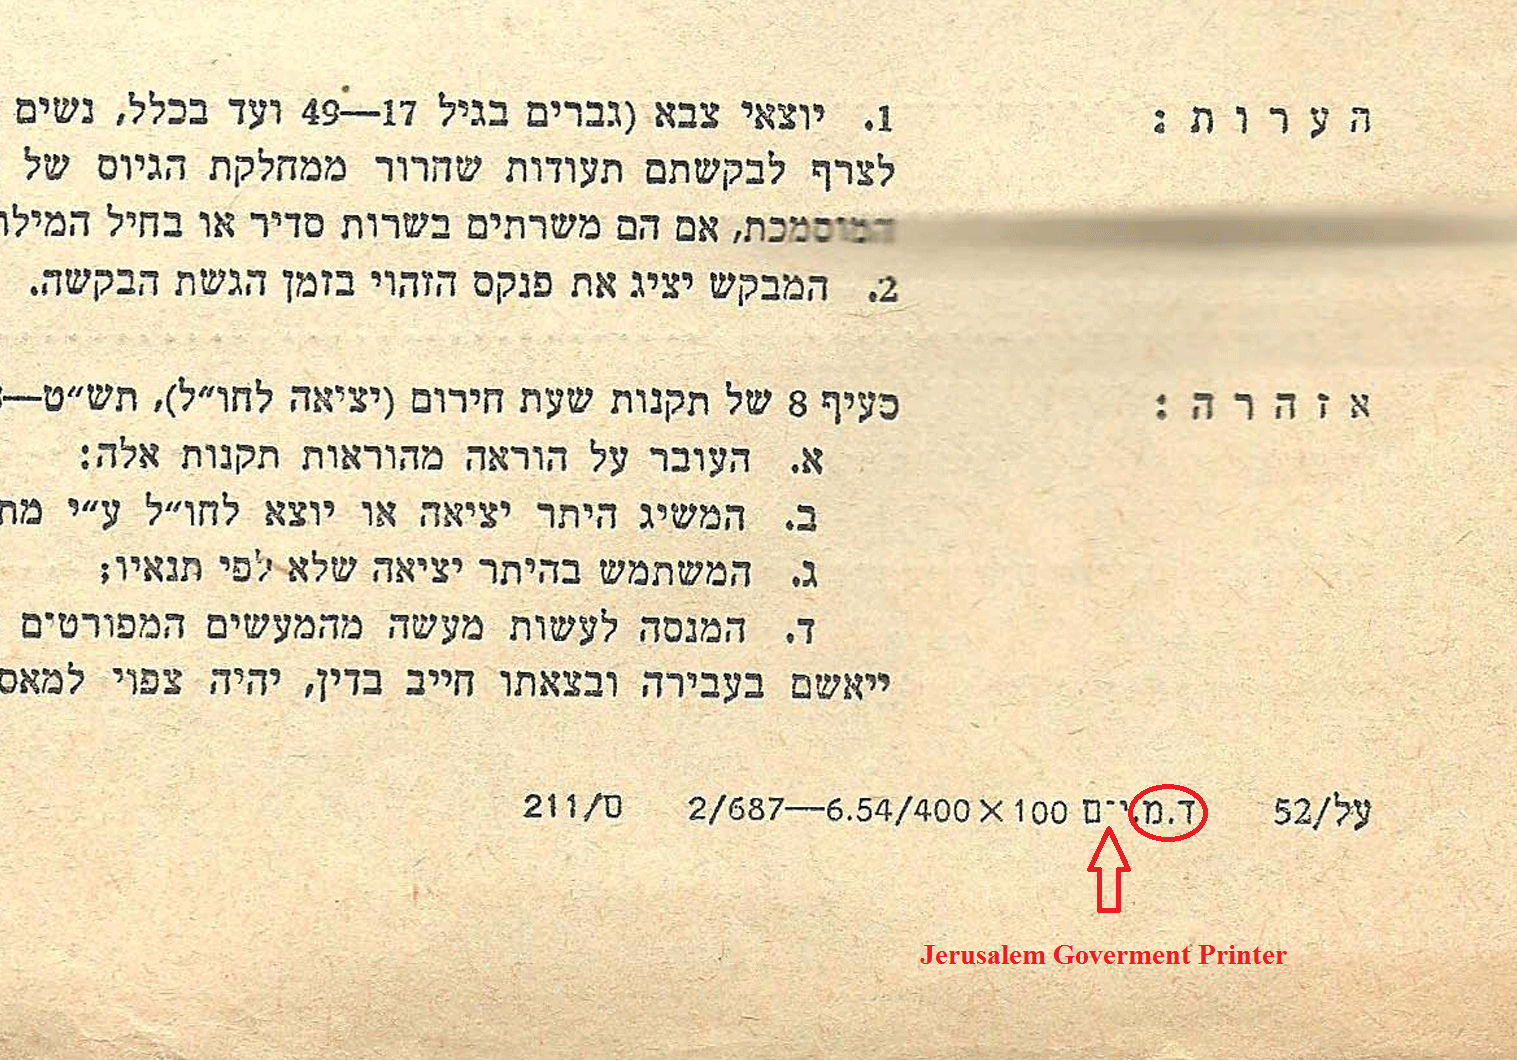 Israel Government Printer 1948 - 1953